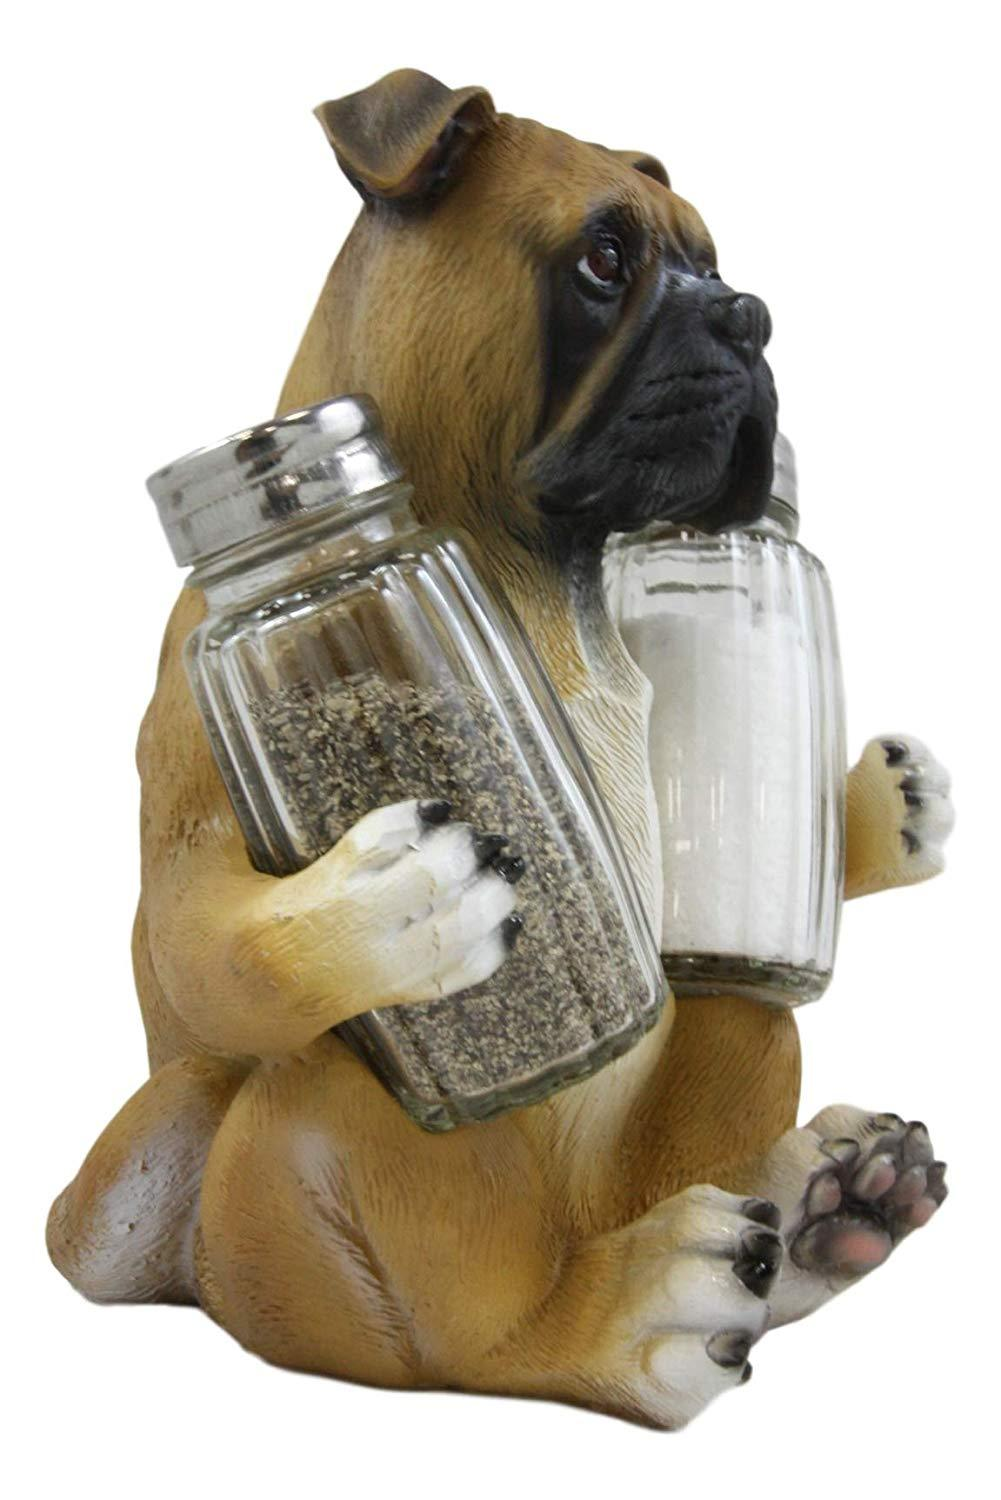 "Ebros Gift Realistic Fawn Boxer Puppy Dog Hugging Glass Salt Pepper Shakers Holder Decorative Statue 6.25""High Resin Dogs Boxers Memorial Pets Pet Pal Animal Home Kitchen Spice Organizer Figurine"